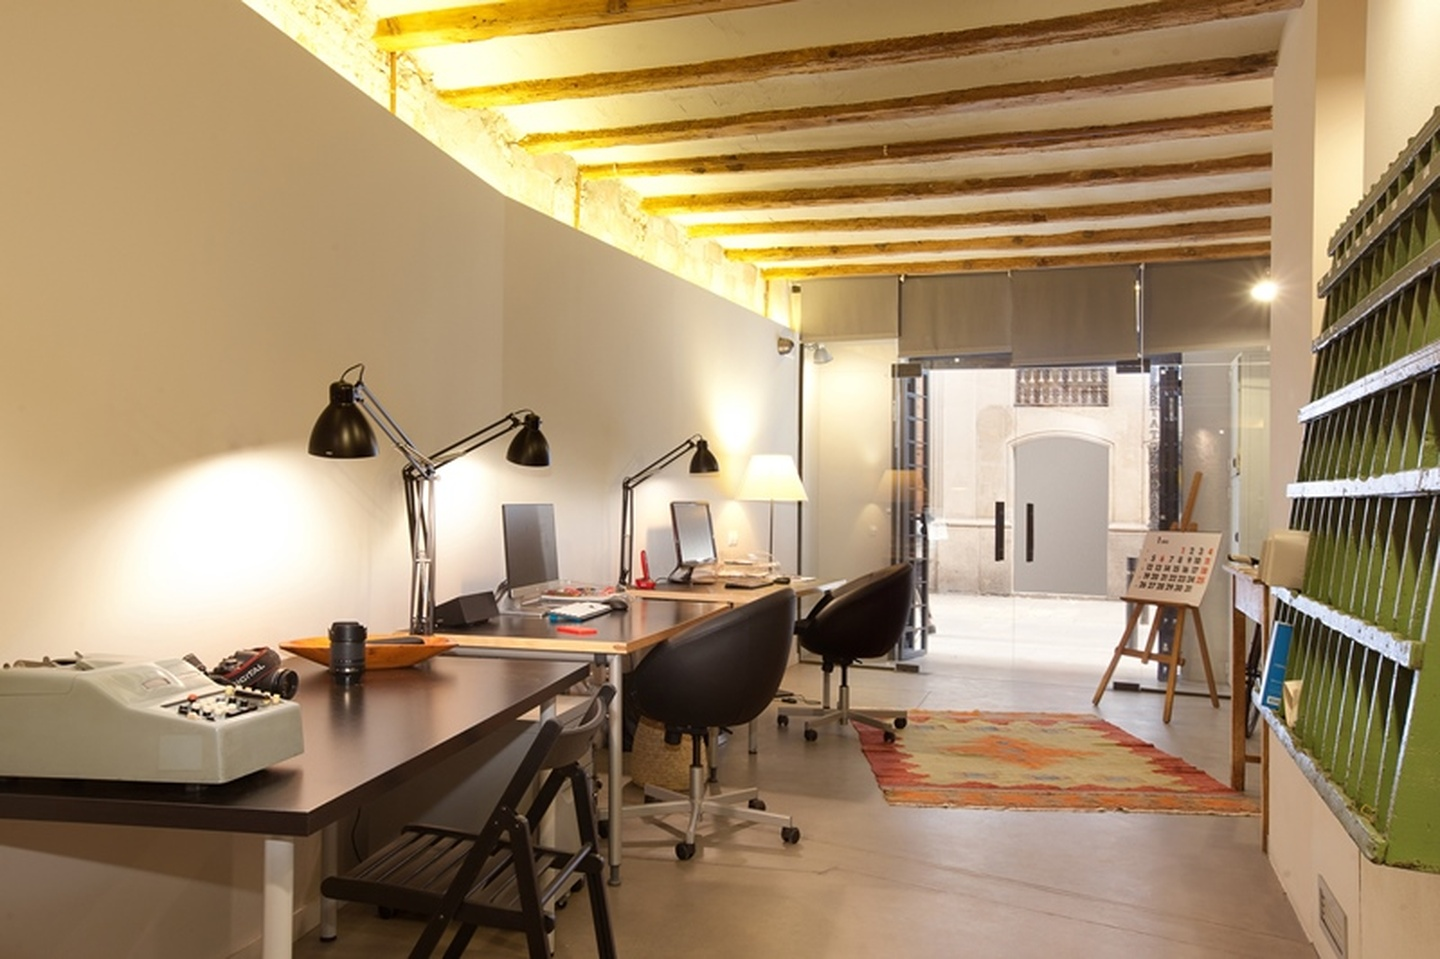 Lighting Design in Work Spaces